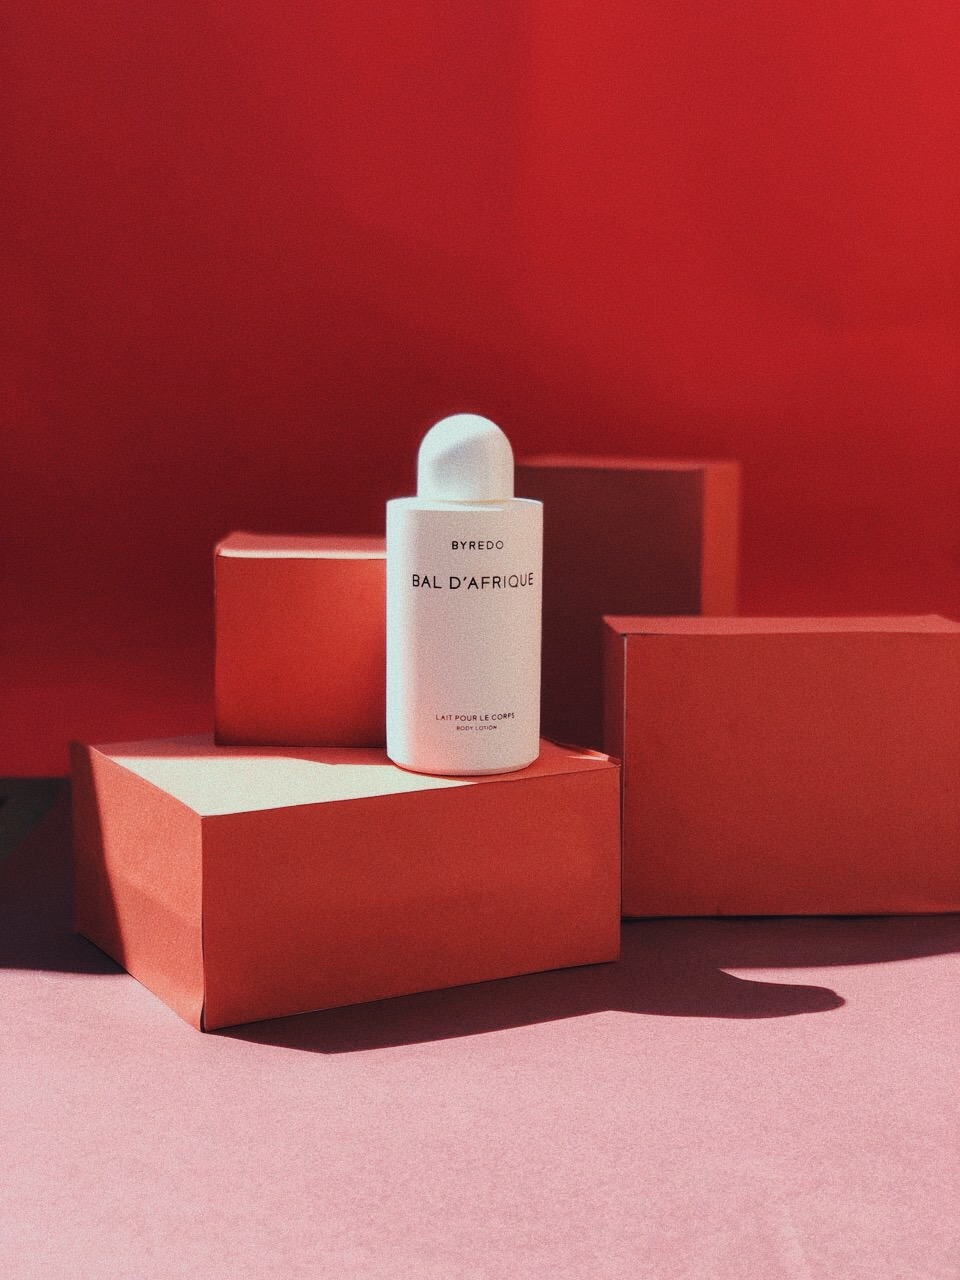 Yes, a luxurious shower gel may be not essential while on your period, but it sure gives you a better feeling. This one by   Byredo   smells heavenly and feels silky af on the skin. - J